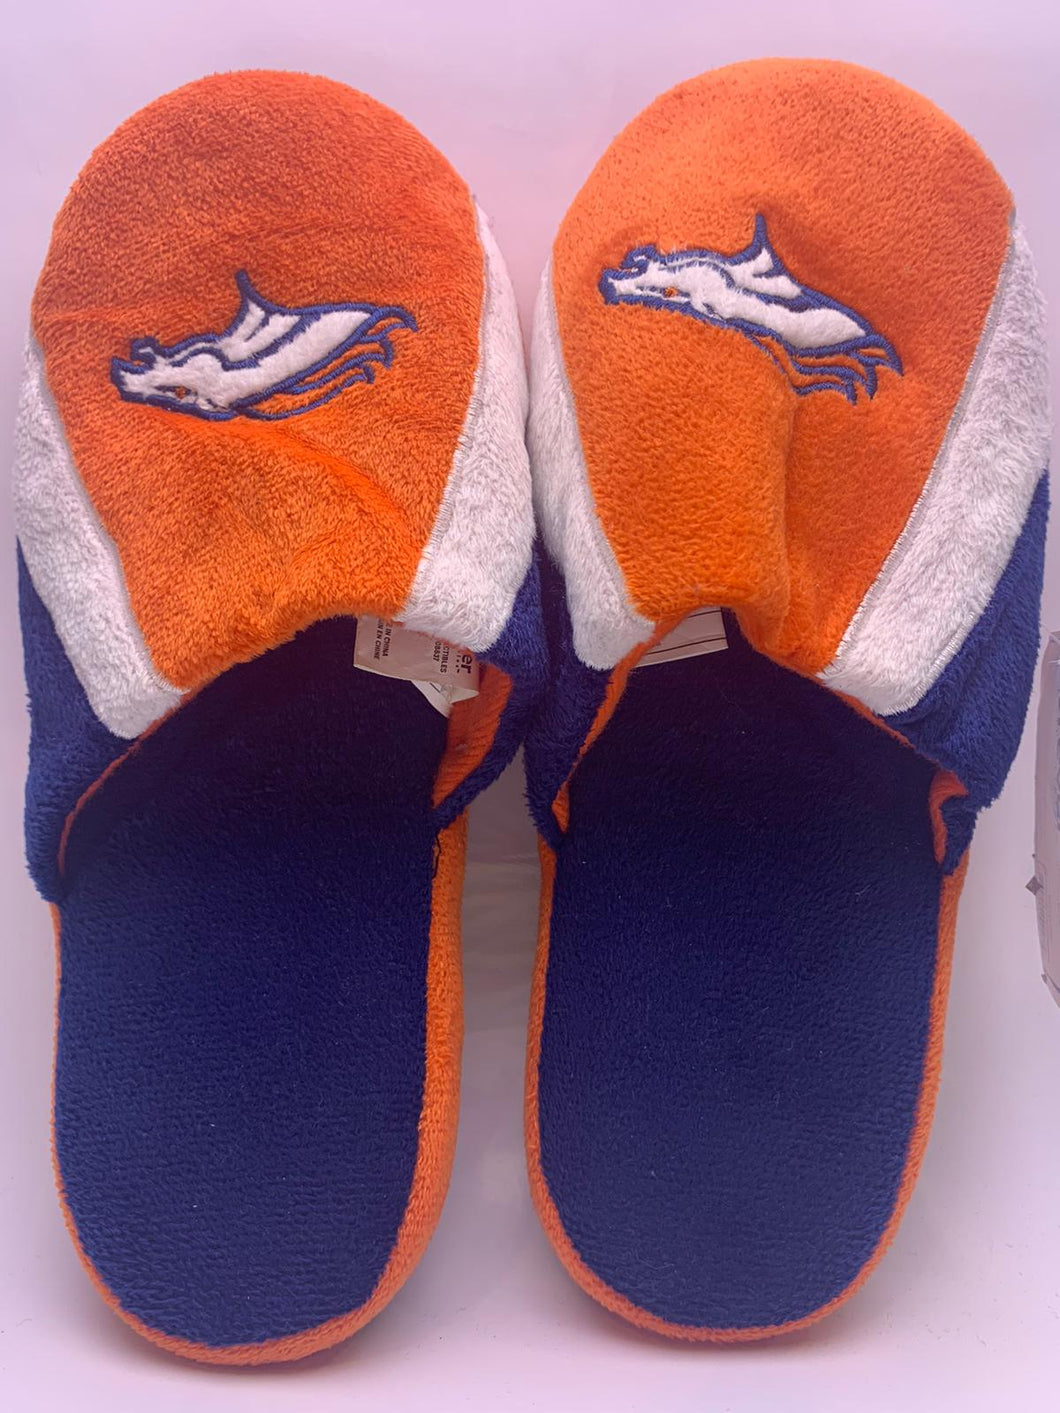 Denver Broncos Slippers 2